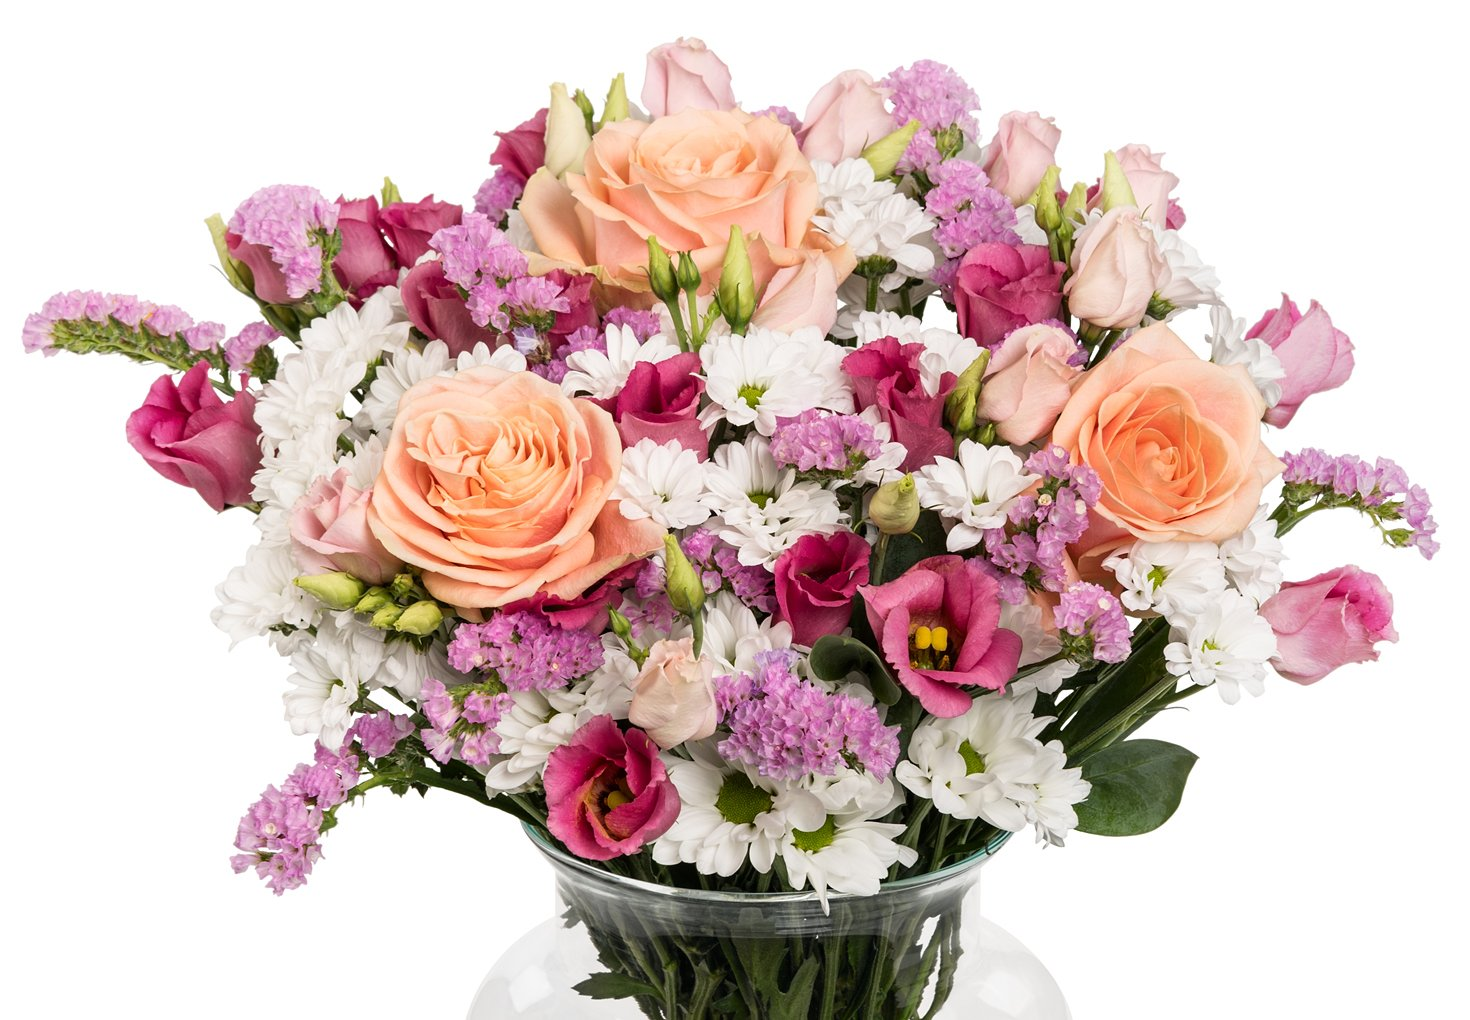 Fresh flowers delivered handwritten card free uk delivery fresh flowers delivered handwritten card free uk delivery elegant pink bouquet of flowers arranged by a skilled florist and presented in stylish izmirmasajfo